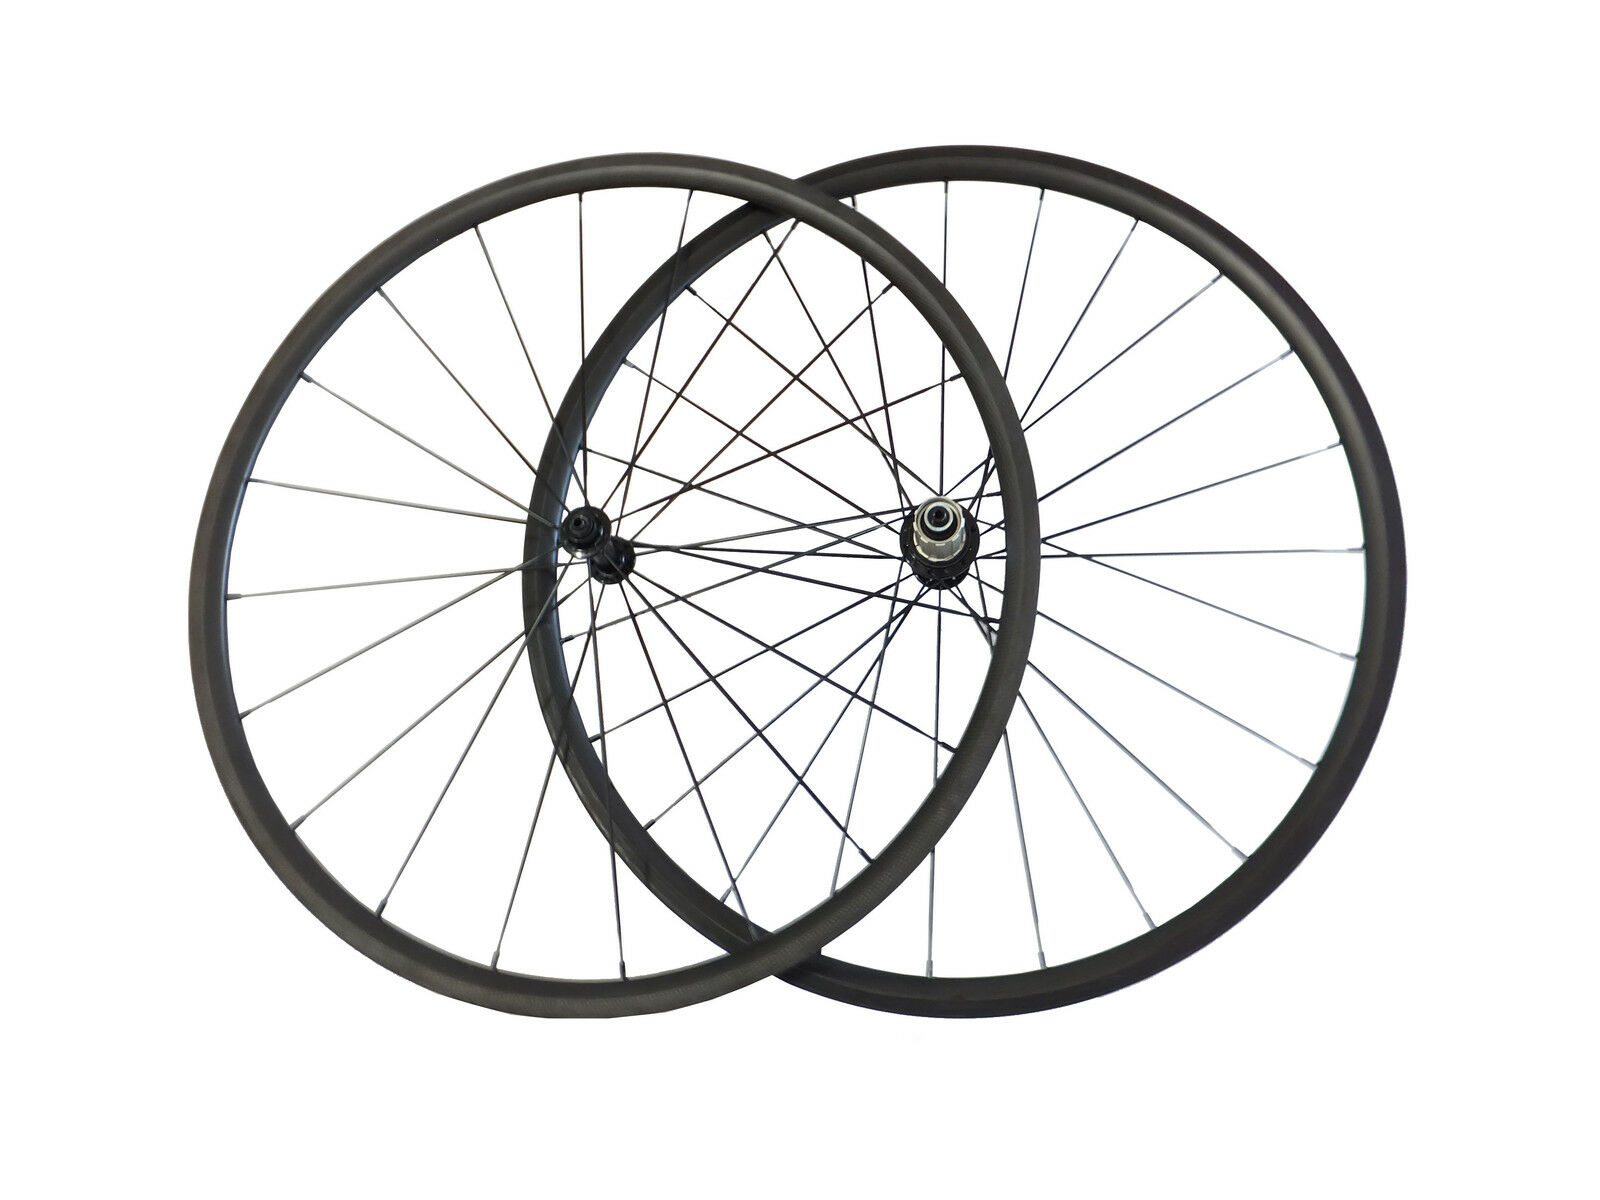 Super Light 1080g 700C 24mm Tubular Carbon Road Bike  Bicycle Wheels  official website